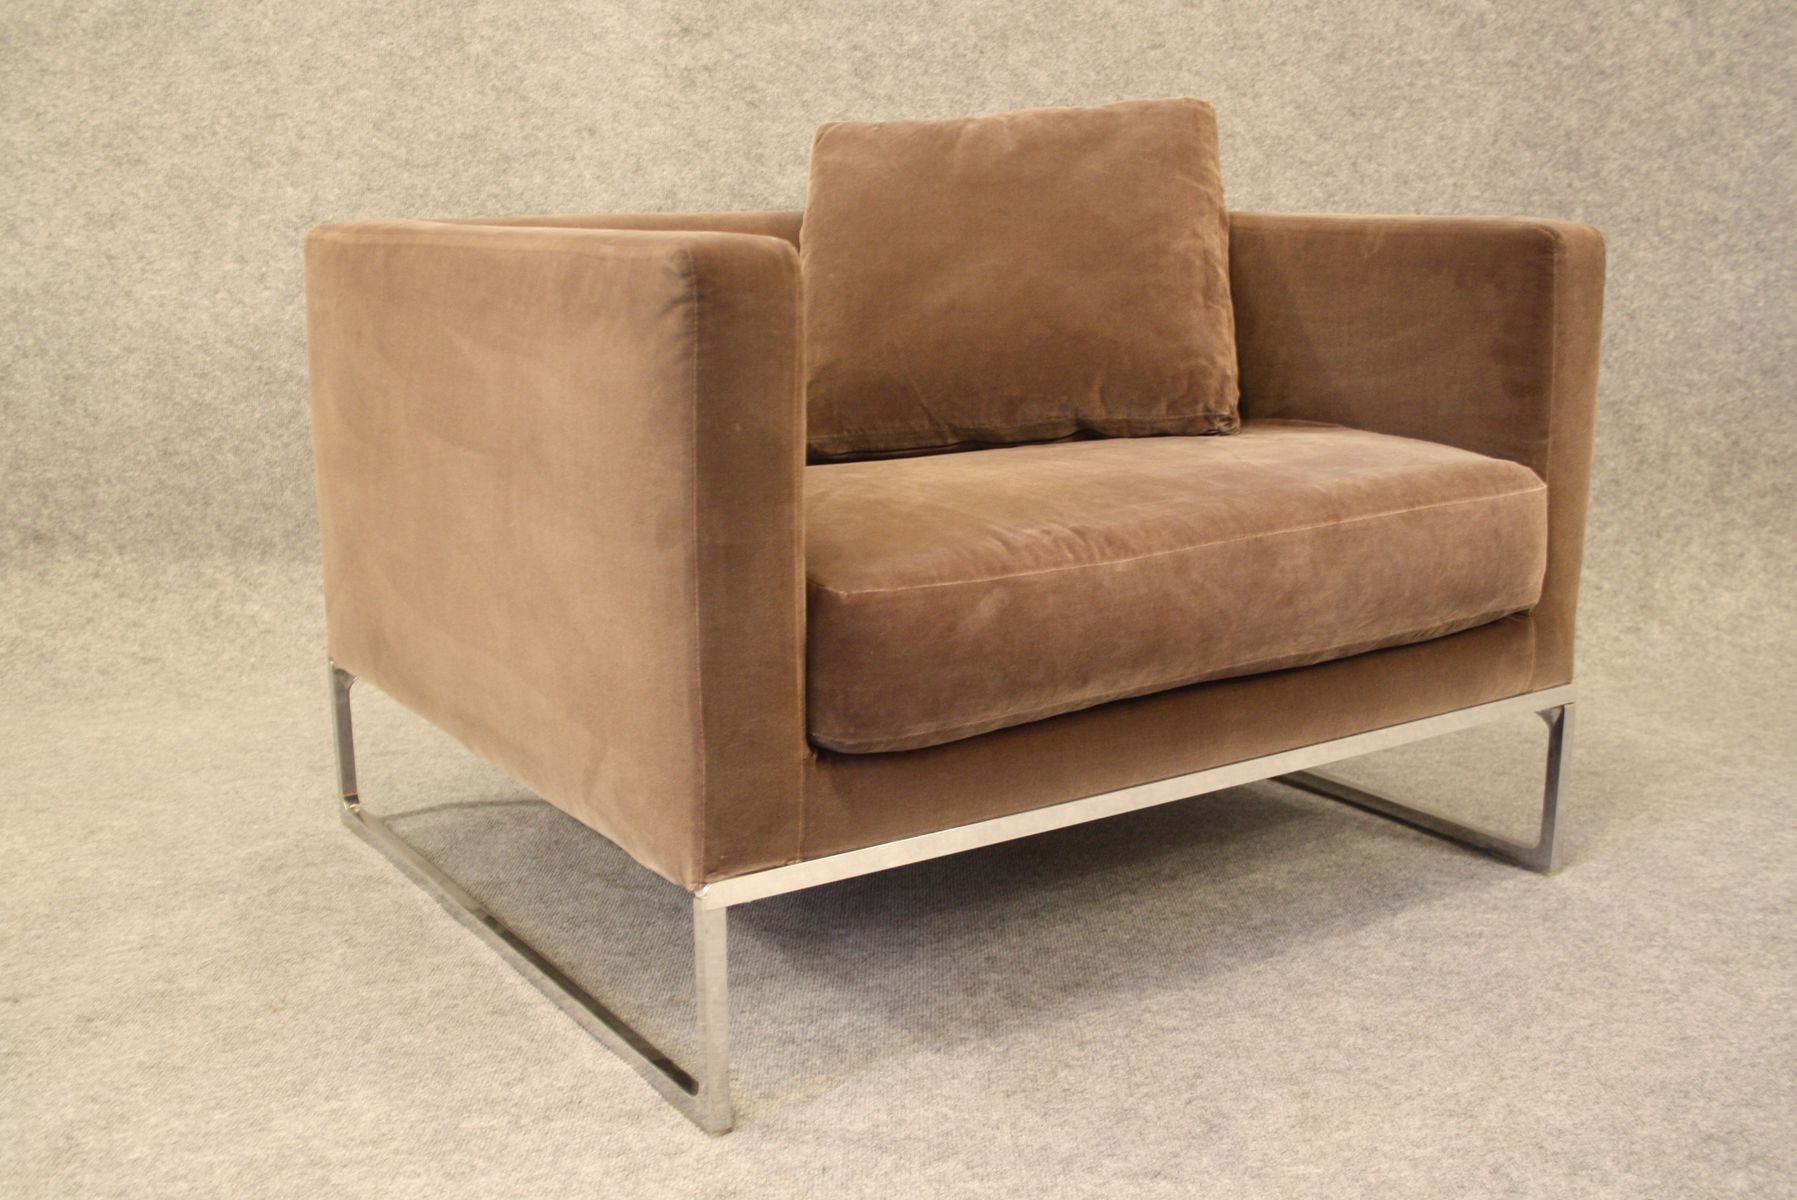 Model Tight Lounge Chair By Antonio Citterio For B B